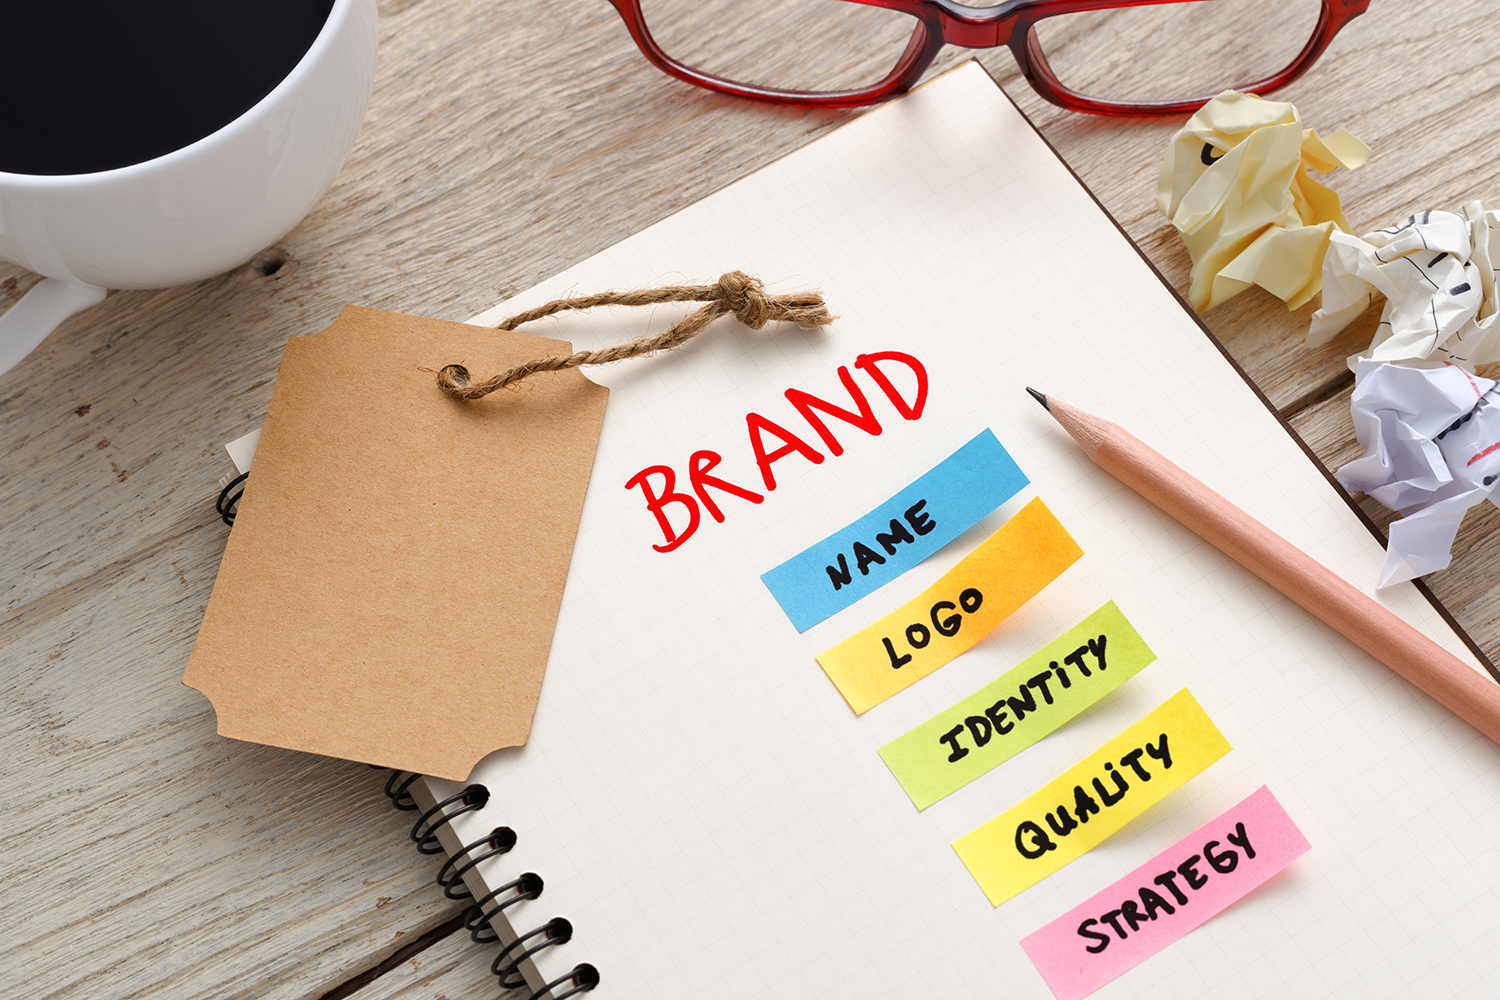 Brands - Does Yours Measure Up?